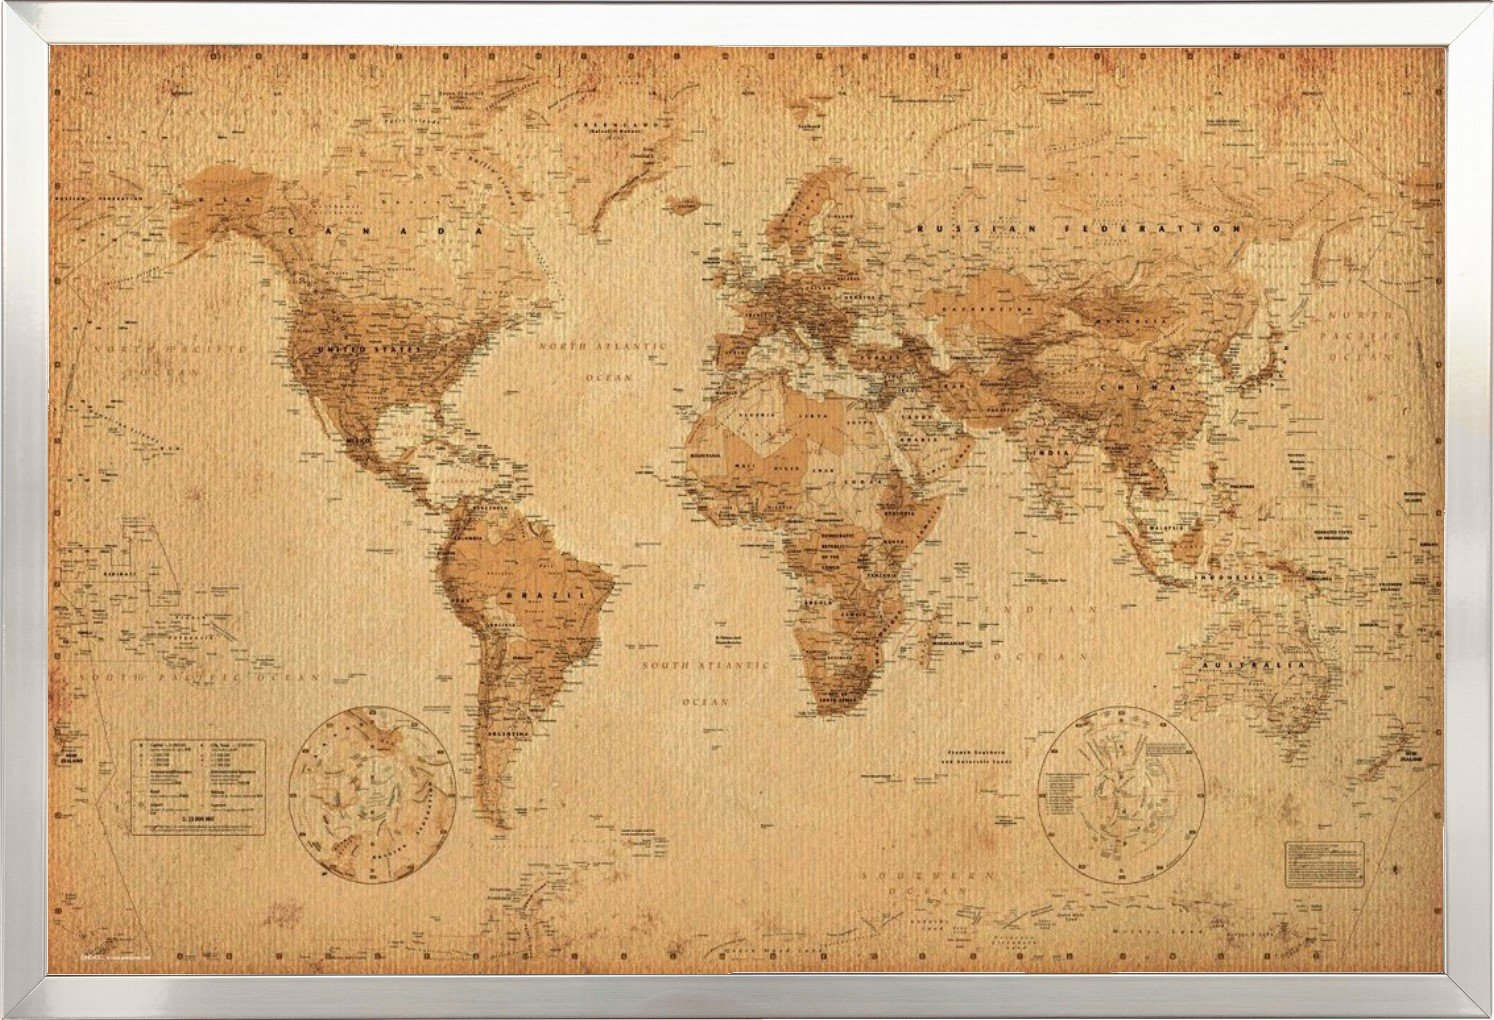 World map vintage style poster print amazon home kitchen gumiabroncs Choice Image